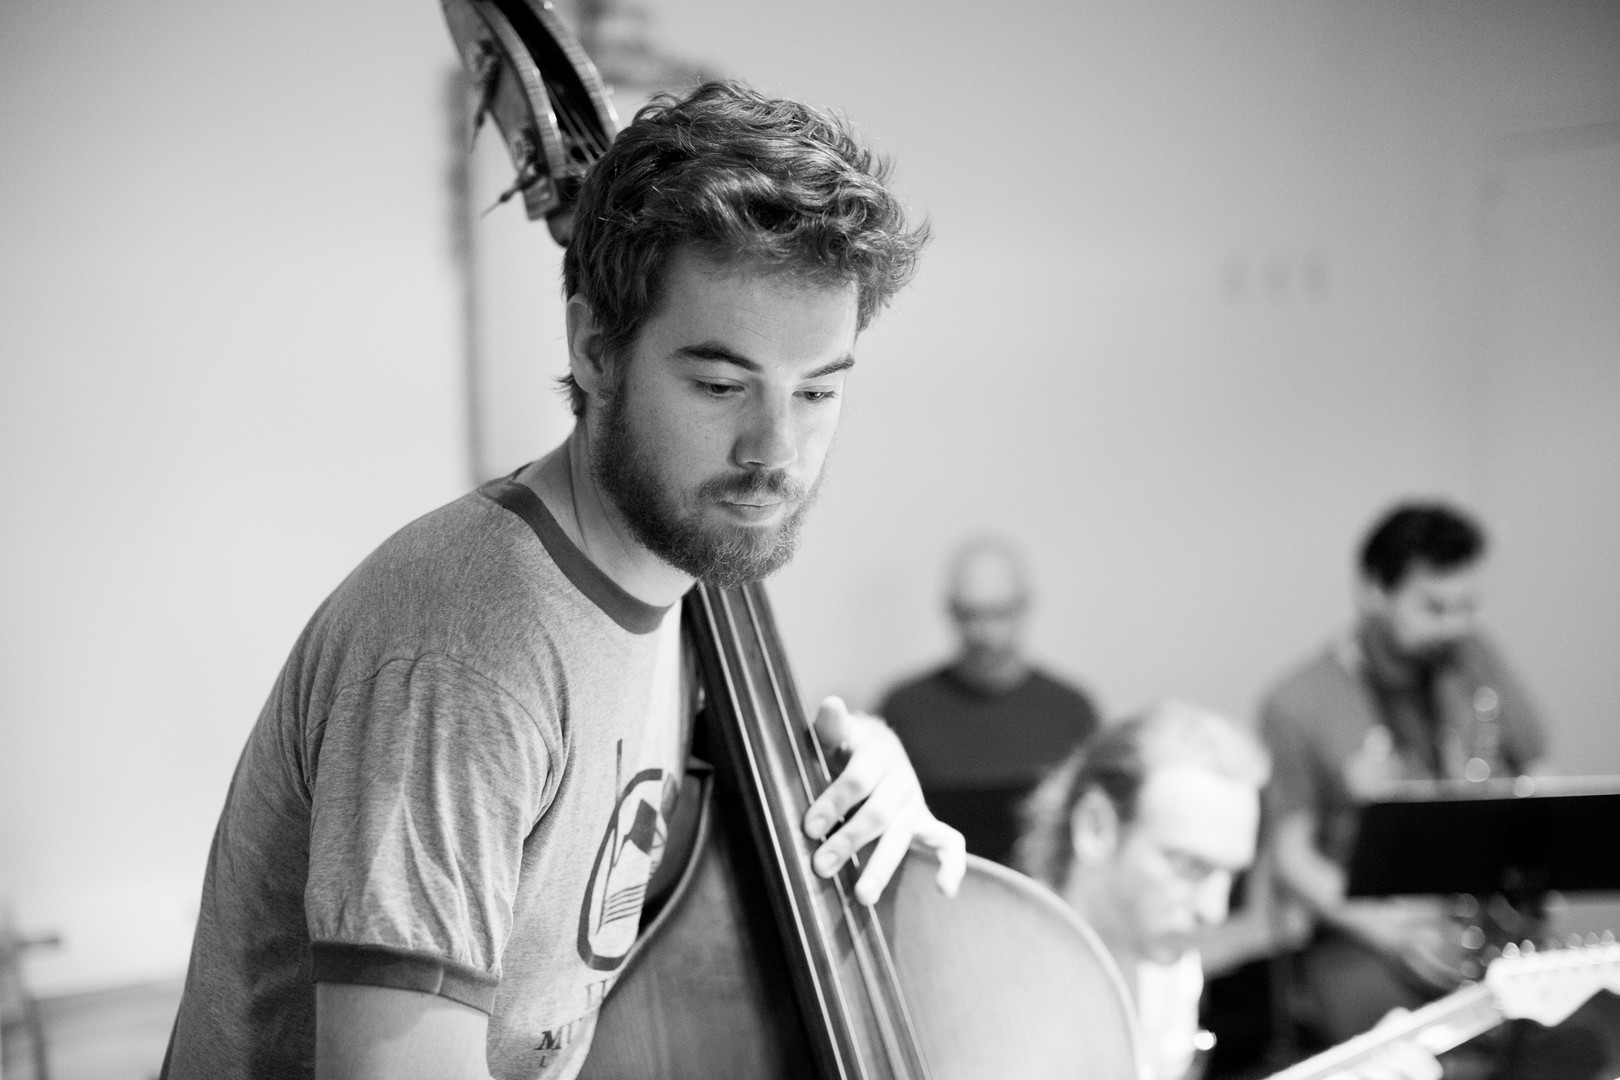 James on the bass